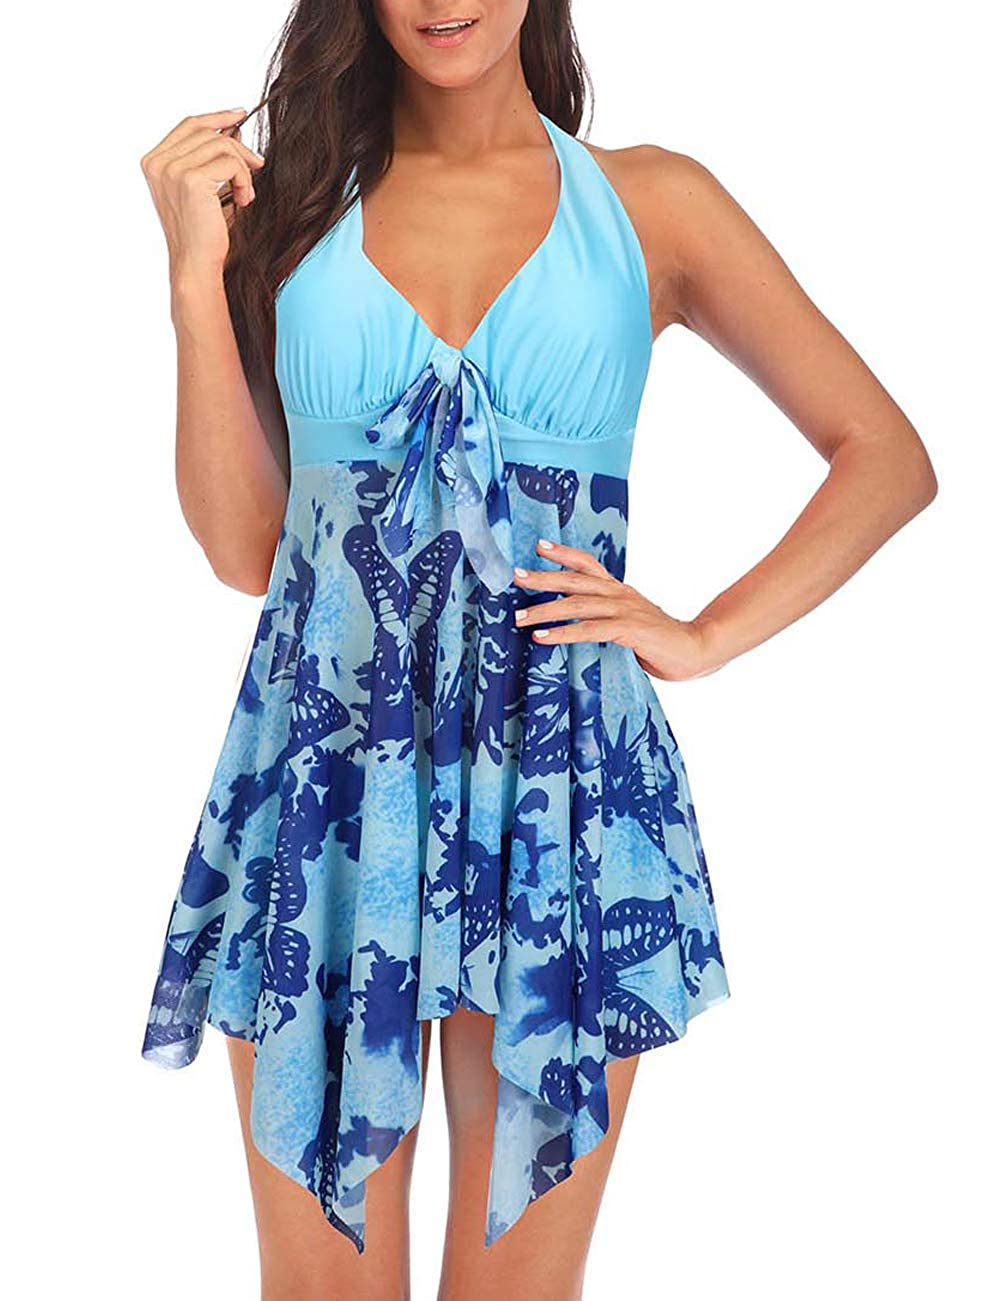 bluee DANALA Women's Two Piece Halter V Neck Plus Size Swimsuit Printed Tankini Sets Split Skirt Swimwear